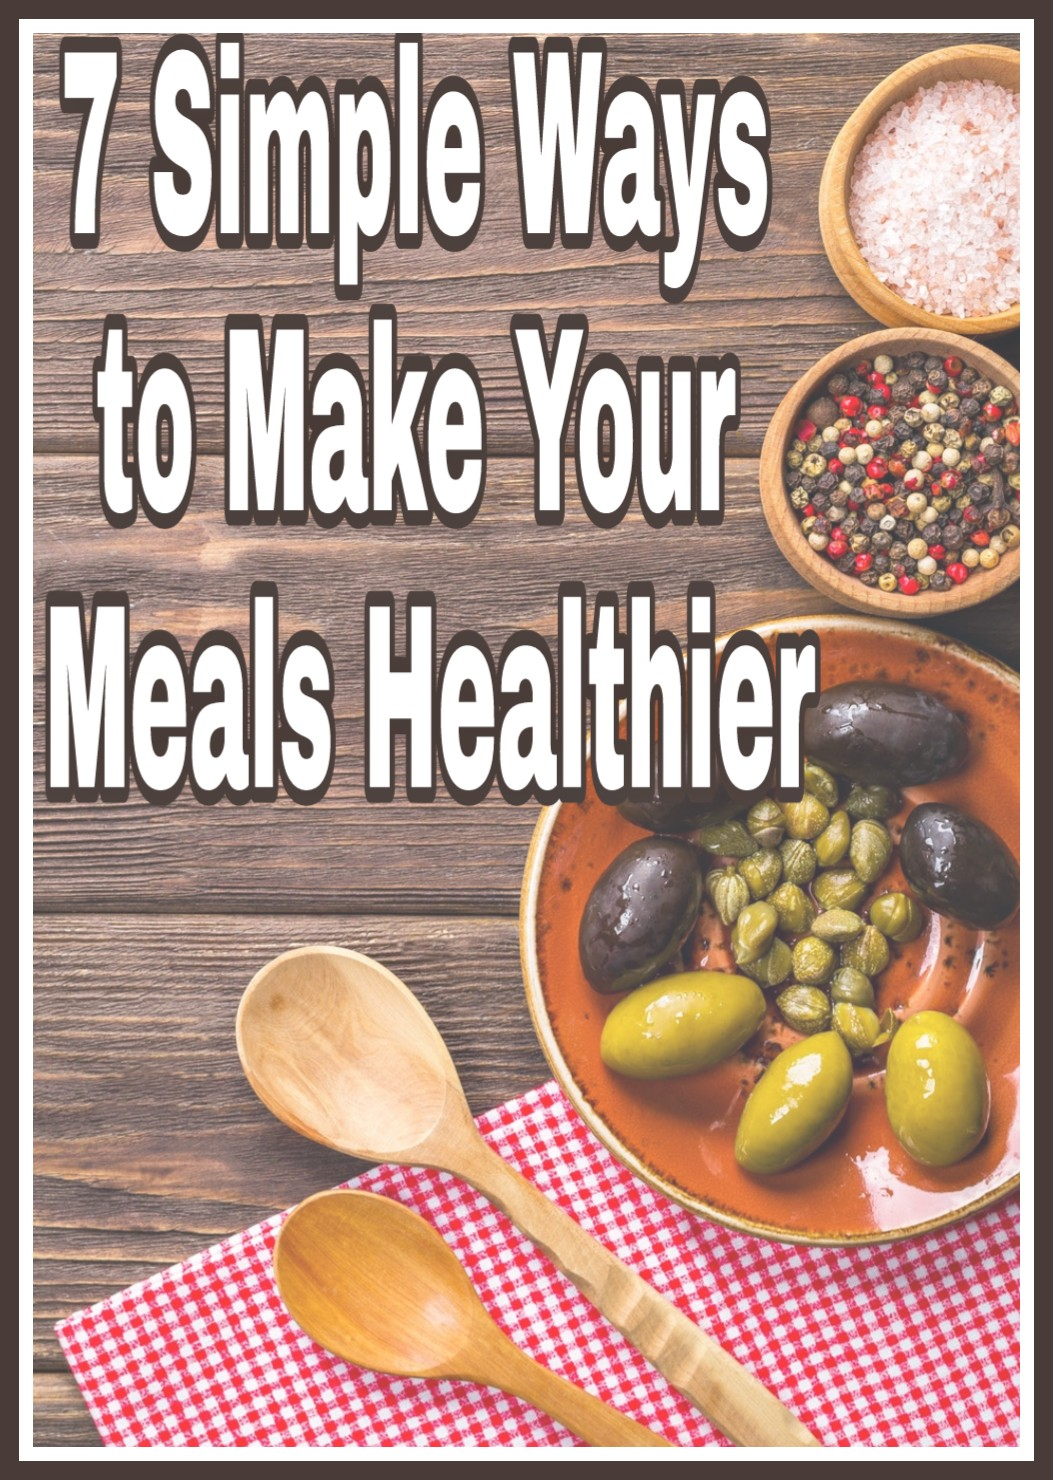 7 Simple Ways to Make Your Meals Healthier: Guest Post by Petra – Be Healthy Now